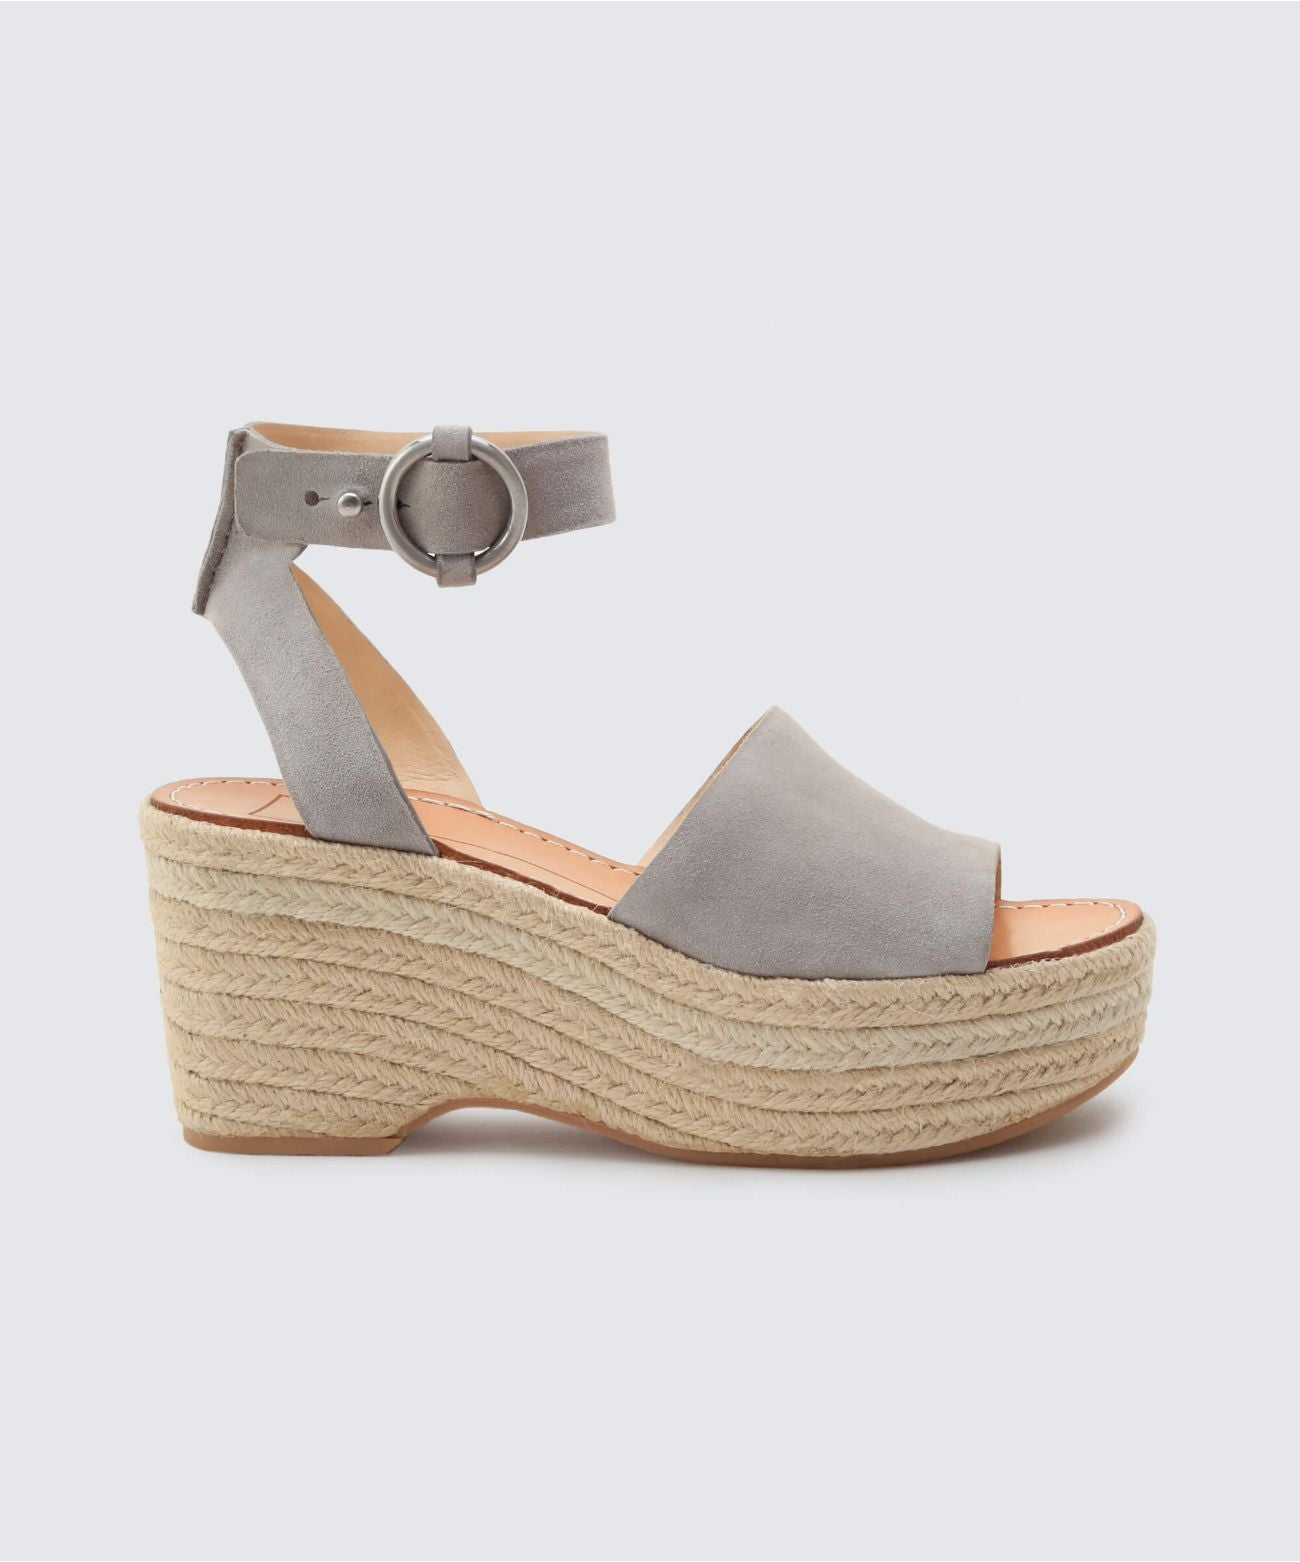 b52139e6936 LESLY WEDGES IN GREY